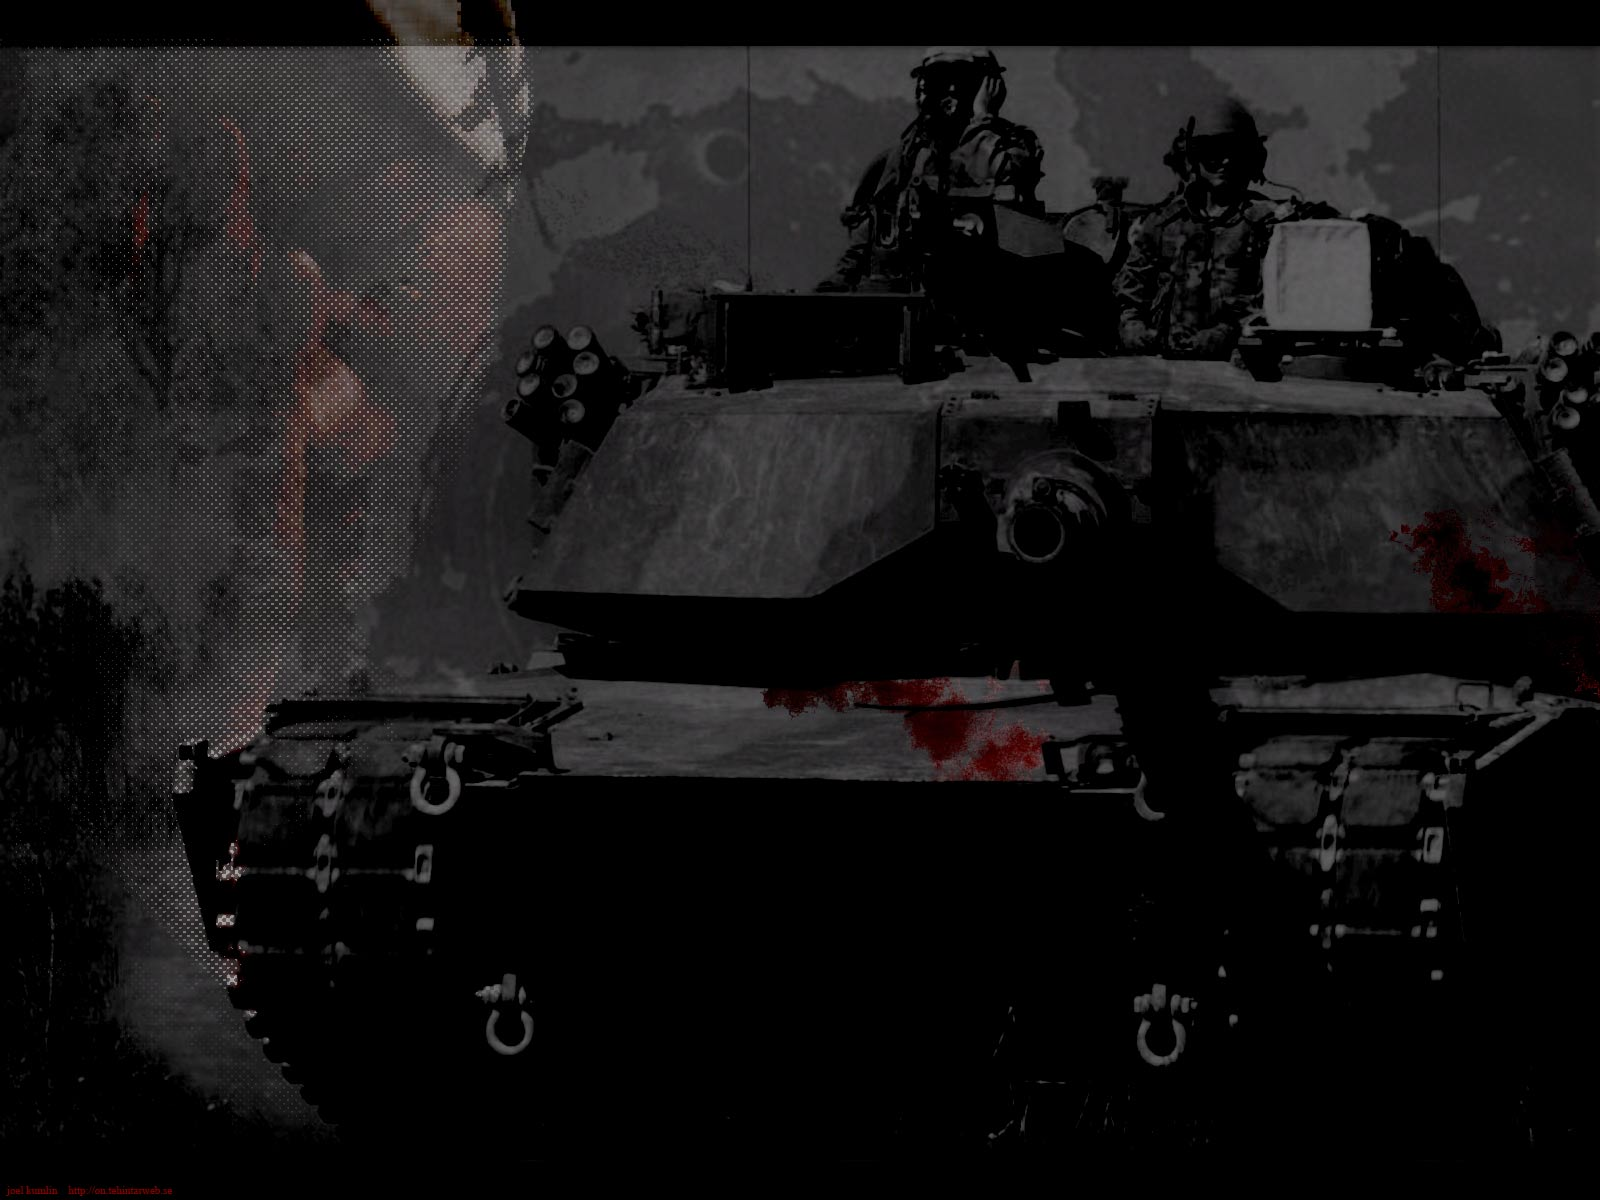 Cool Military Desktop Backgrounds Hd military wallpapers 2 1600x1200